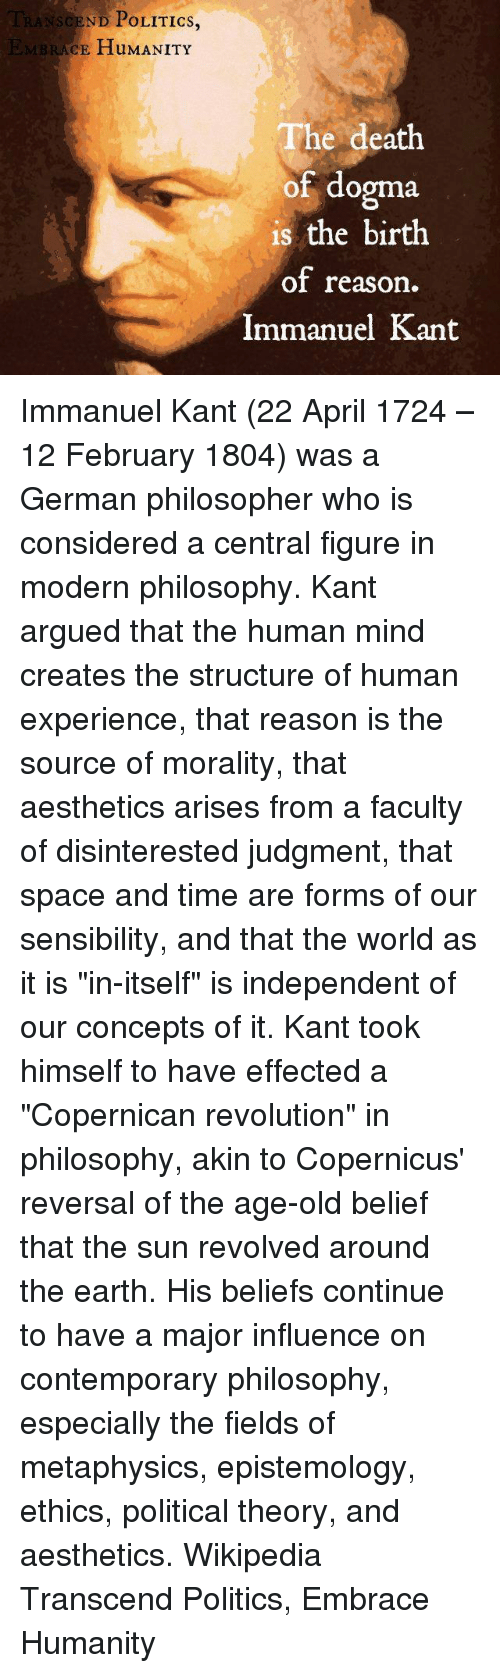 immanuel kants beliefs in the field of human knowledge Kant argued conception people have about the human mind structure which person experience to  to be used in schools until today because many tutors and student believe the man was brilliant and influential in the field of politics immanuel kant and john locke are two important individuals who have had a  look at the idea where locke was writing about the right of non-believers you would.